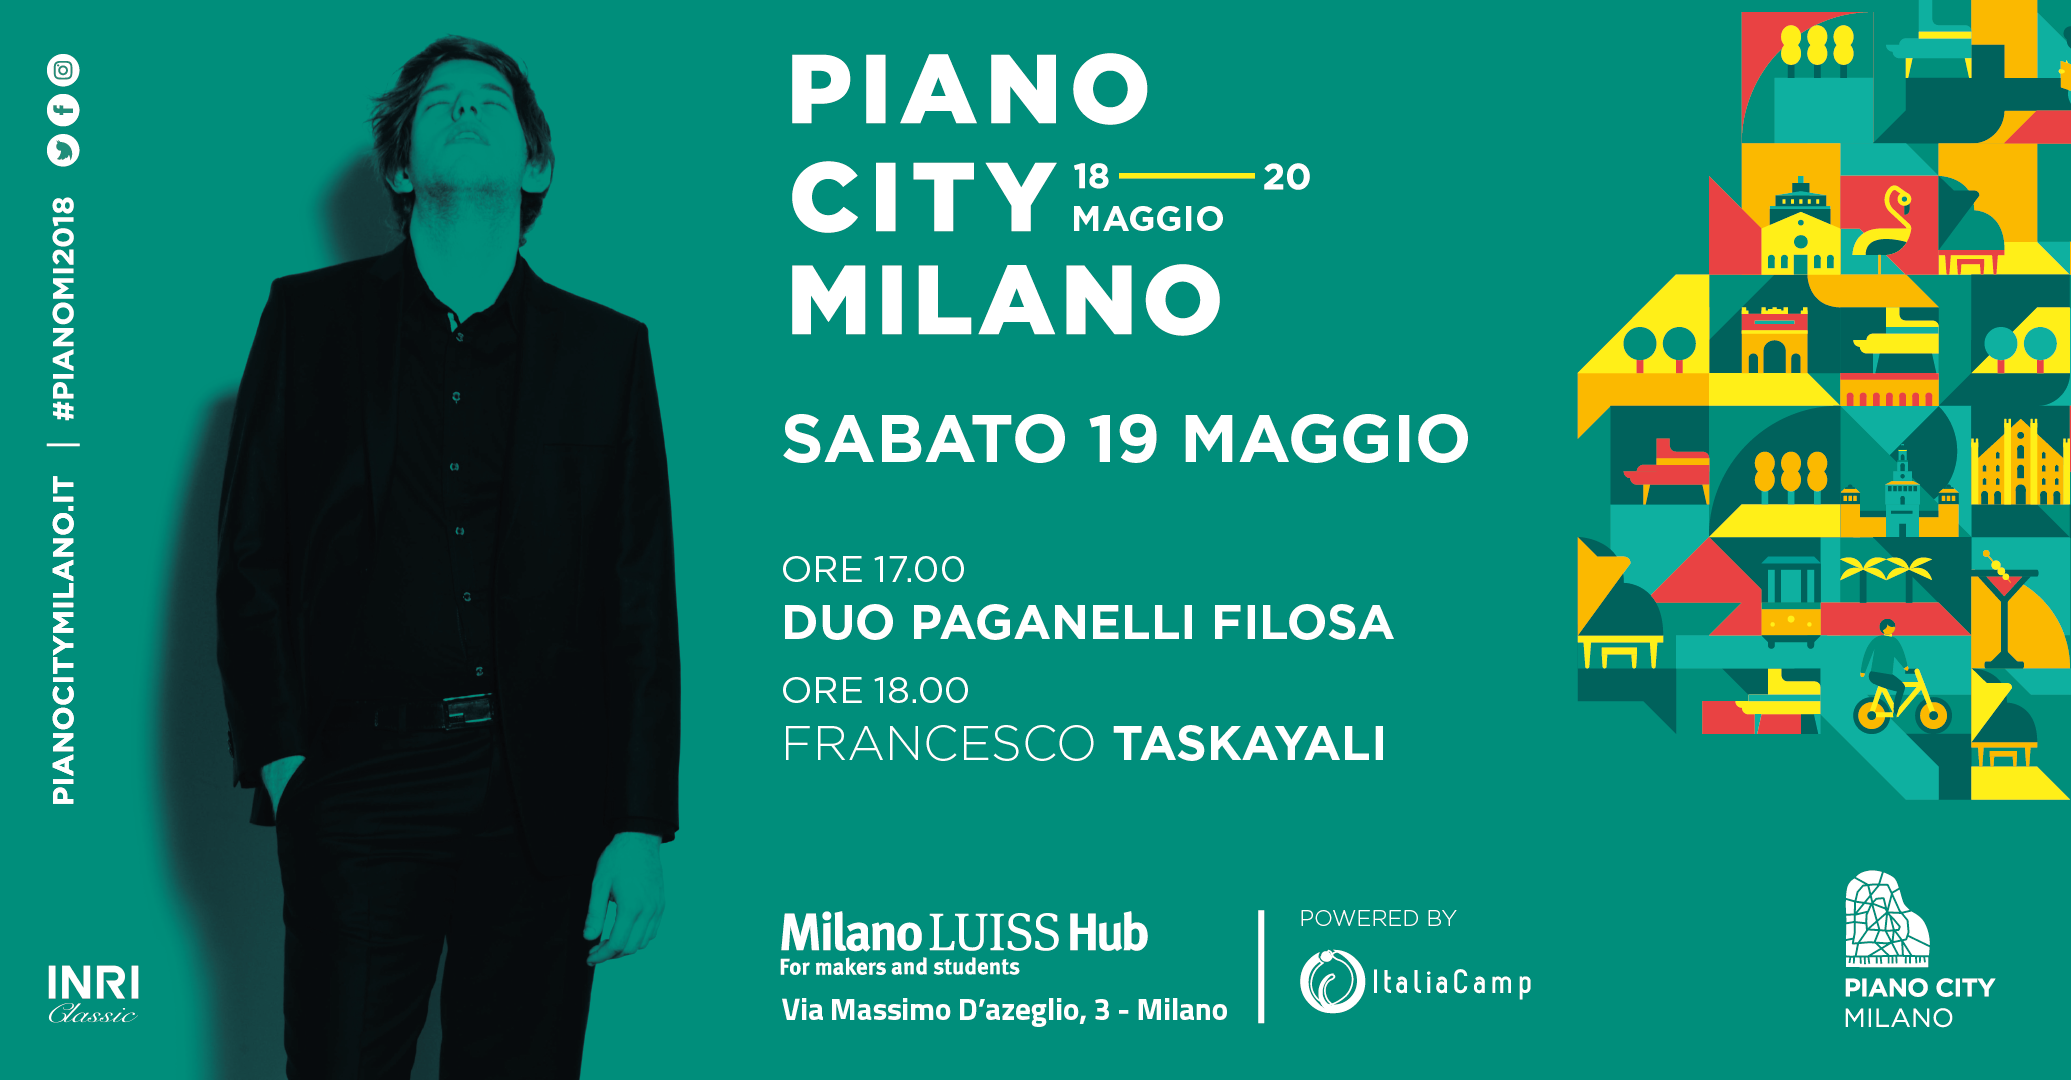 piano-city-milano-francesco-taskayali-